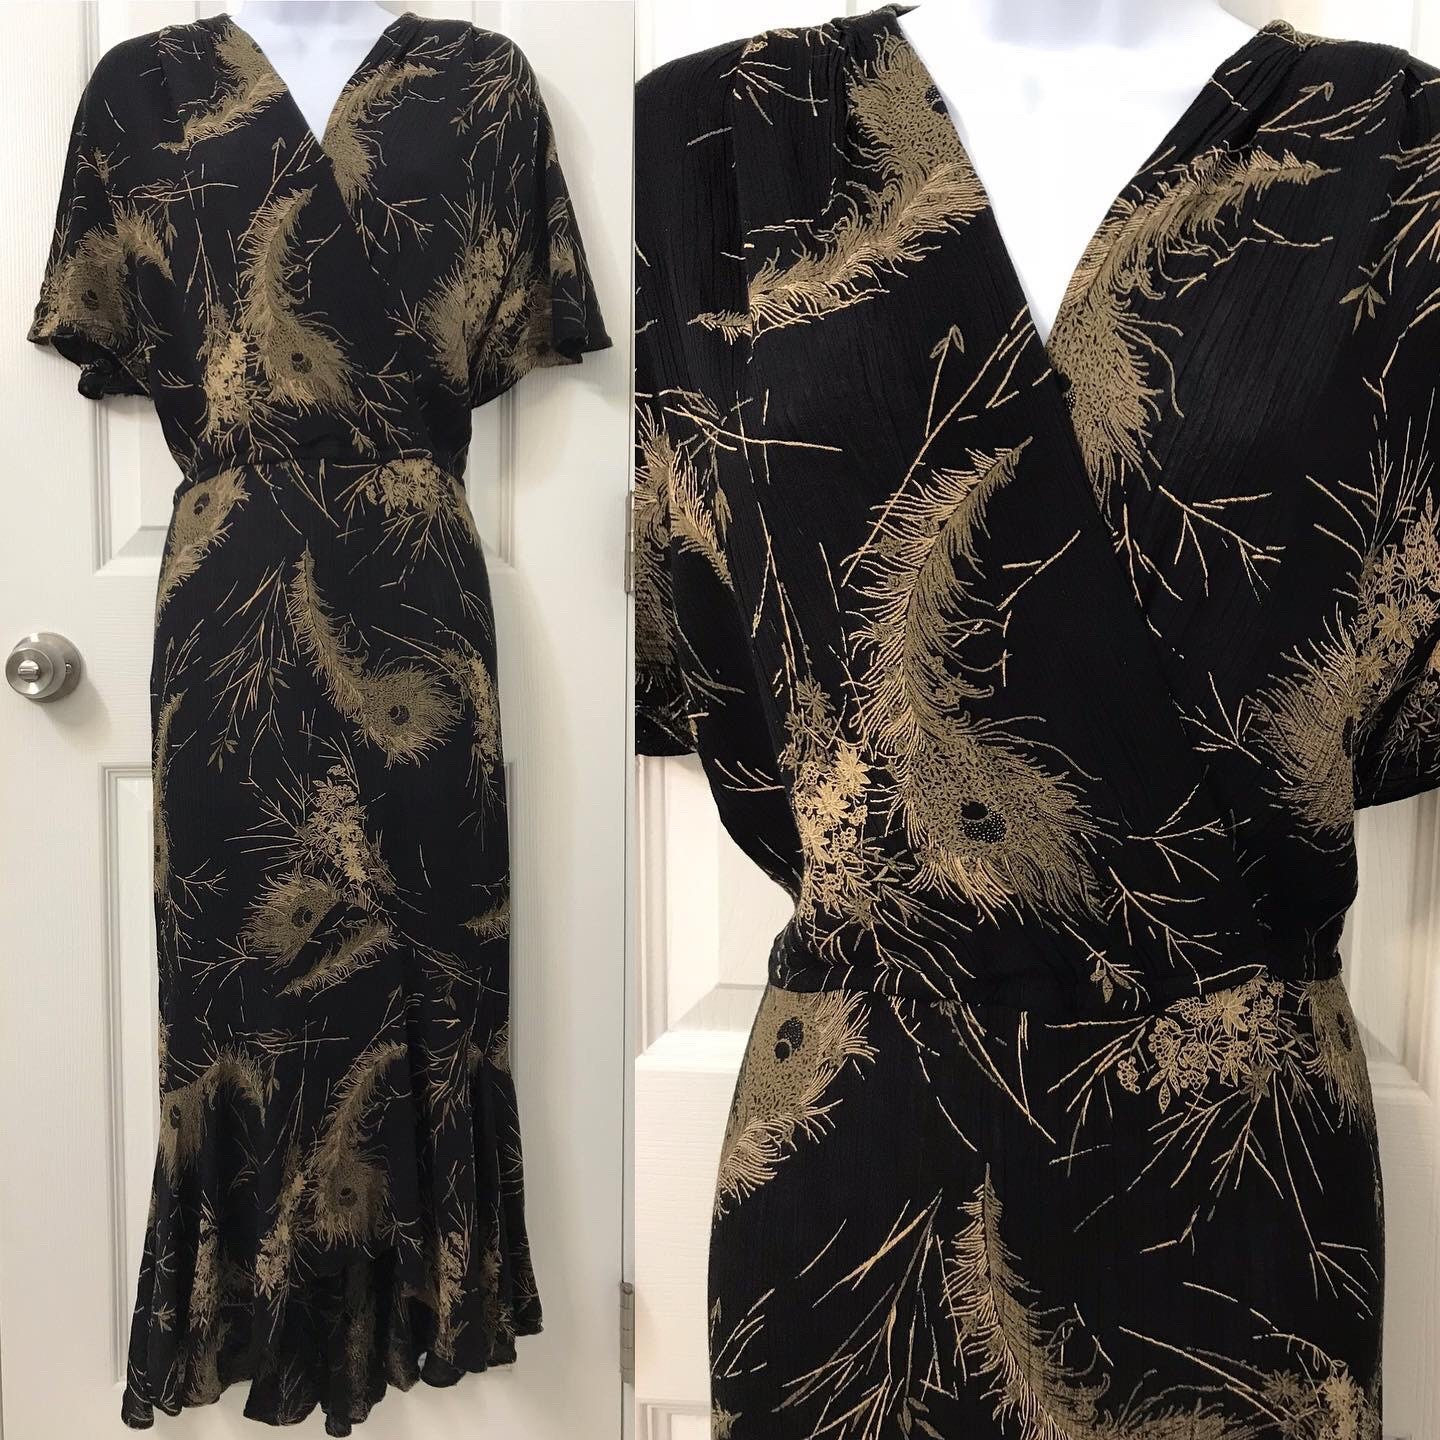 80s Dresses | Casual to Party Dresses Beautiful Rayon Bias Cut Maxi Vintage Black Feathers Foliage Florals Hostess Dress Flutter Sleeve Fishtail Gown 80S 1980S Does 30S 1930 $29.50 AT vintagedancer.com